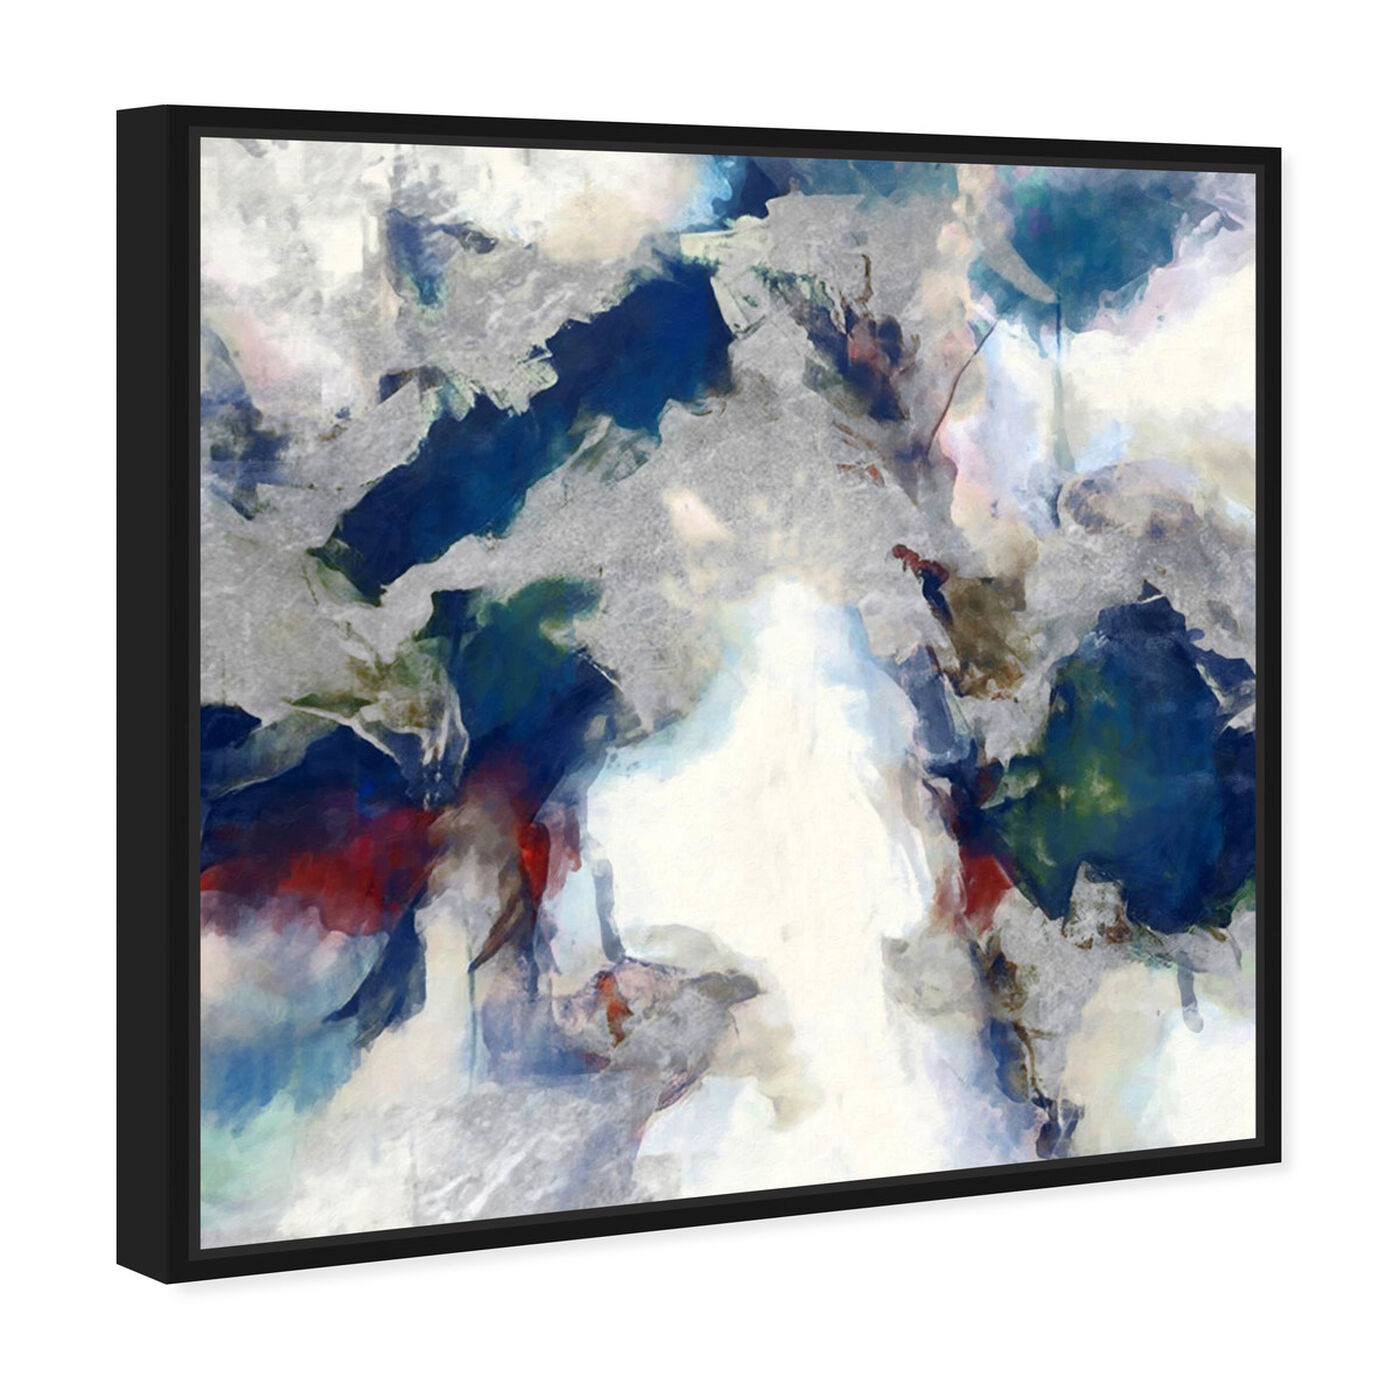 Angled view of Explosive Shade featuring abstract and textures art.